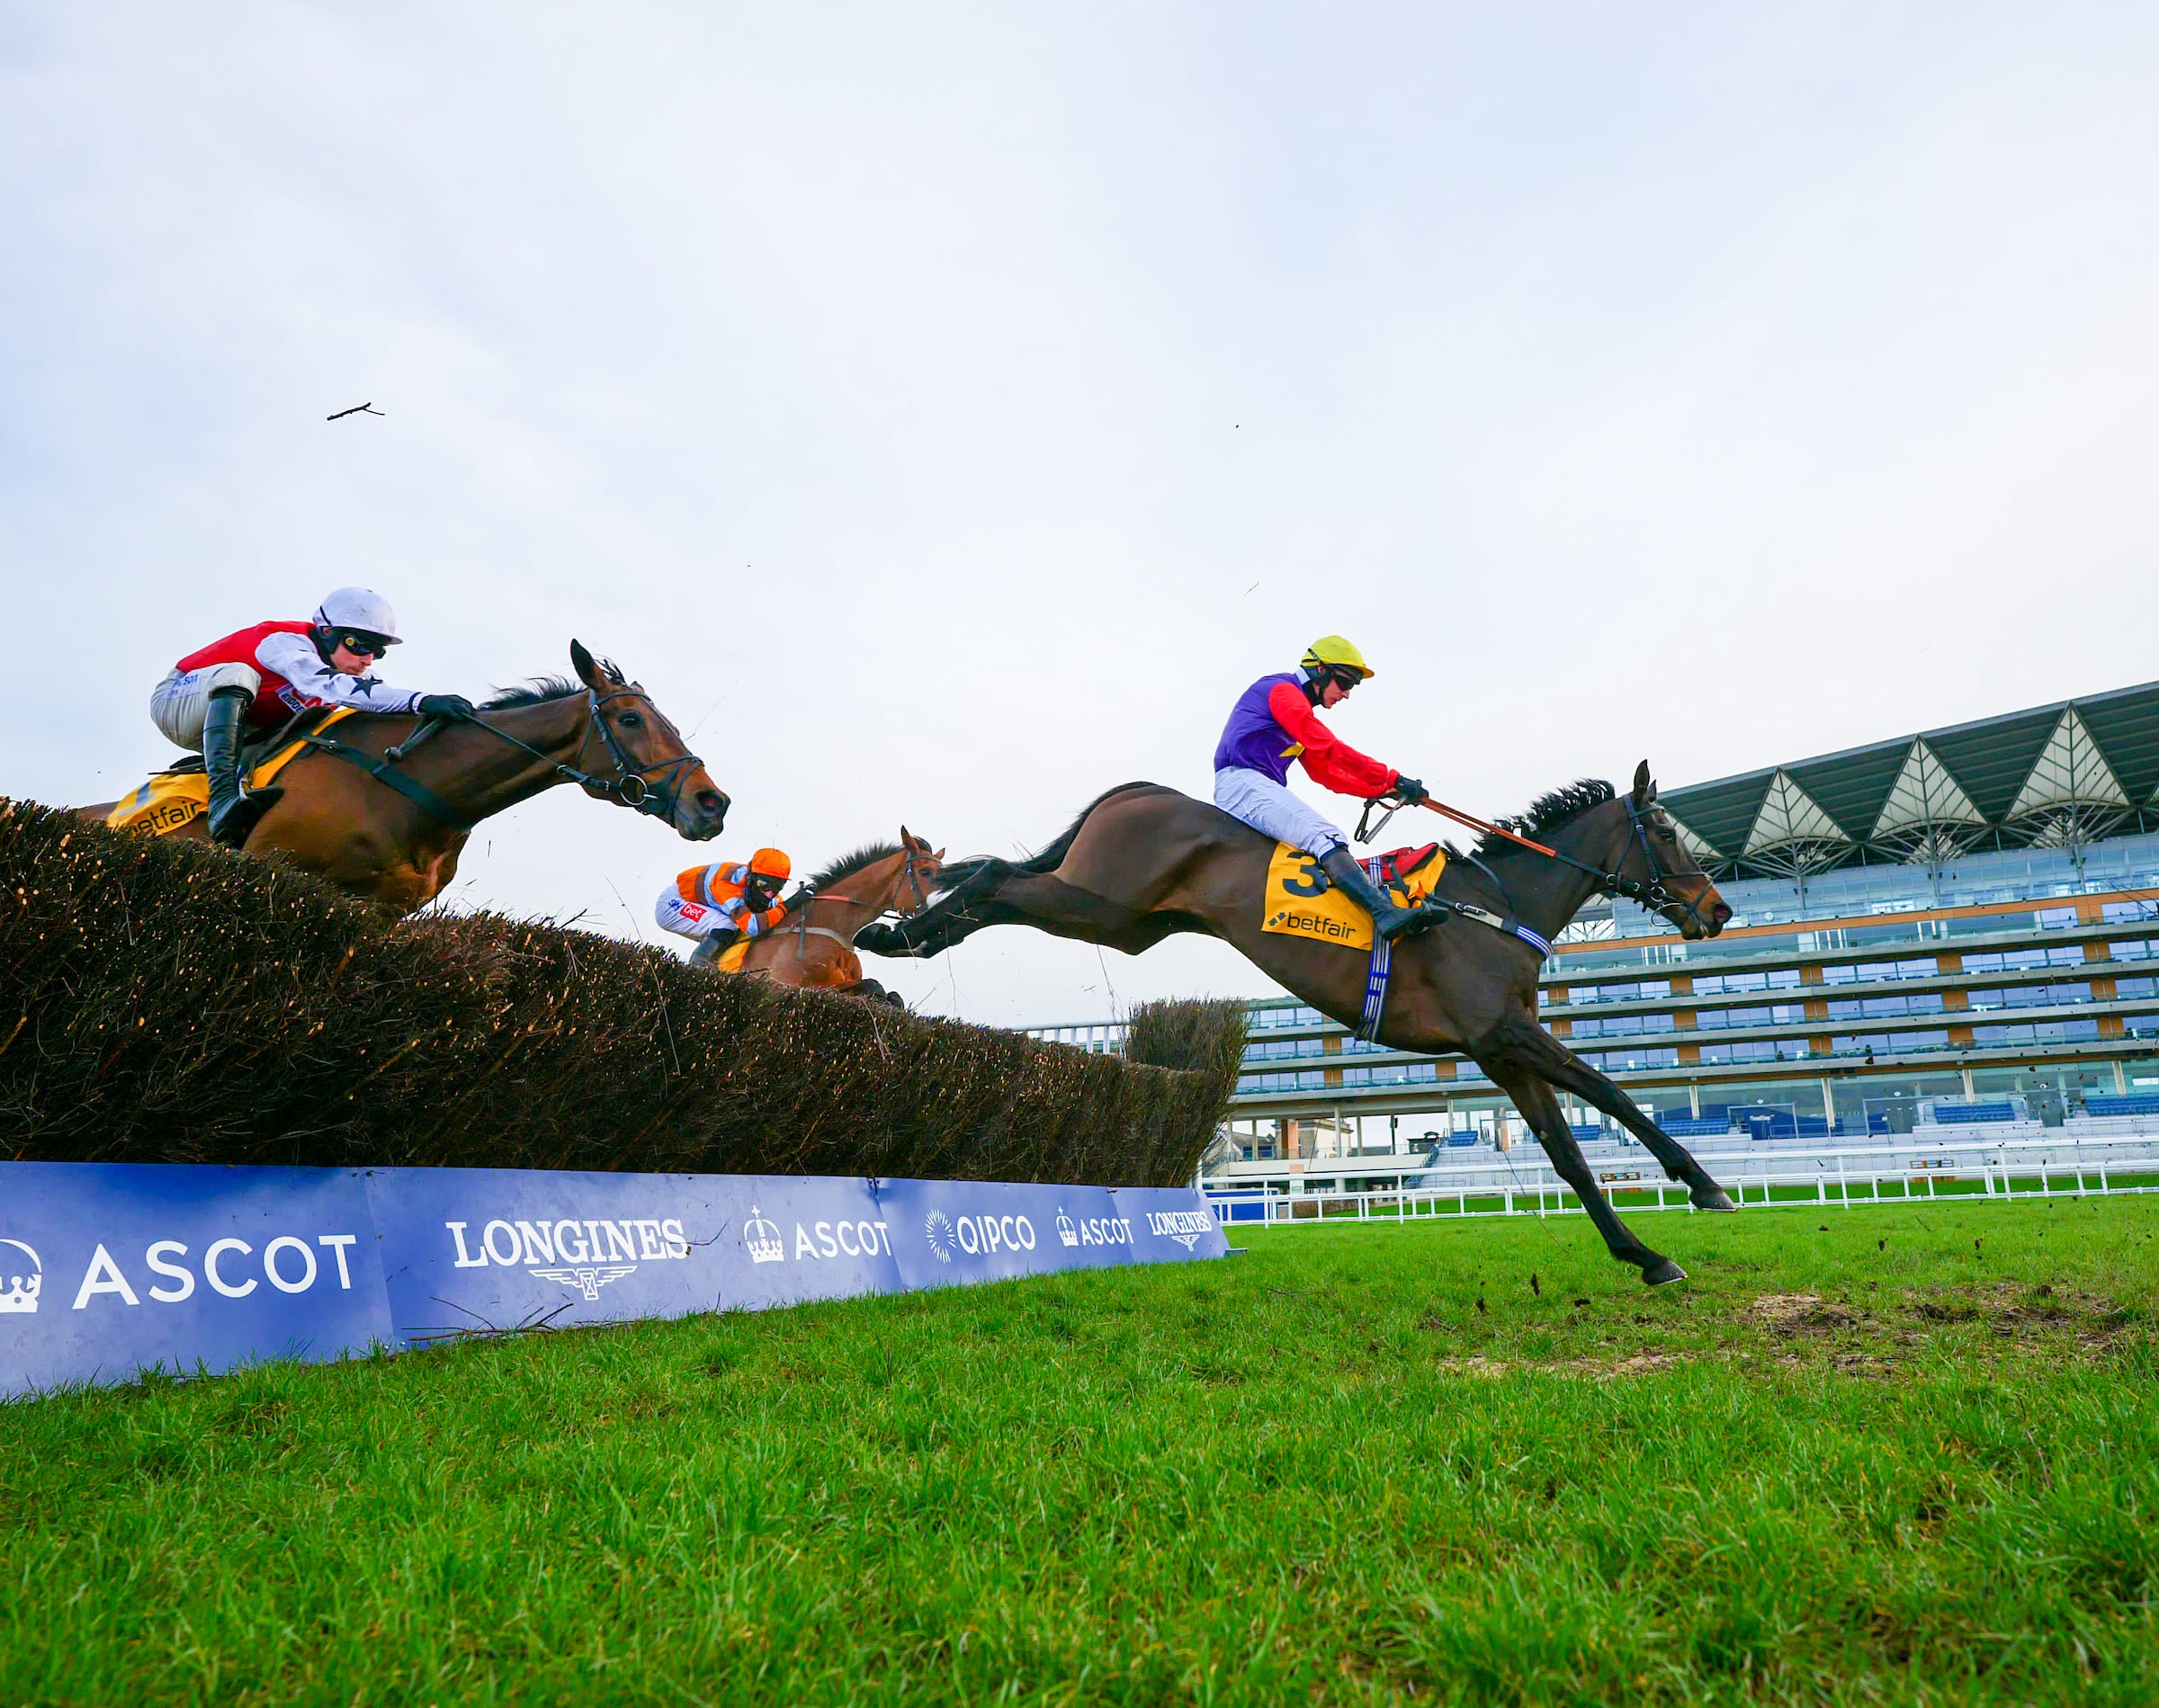 Dashel Drasher en route to victory in the Ascot Chase (Pic: Focusonracing)